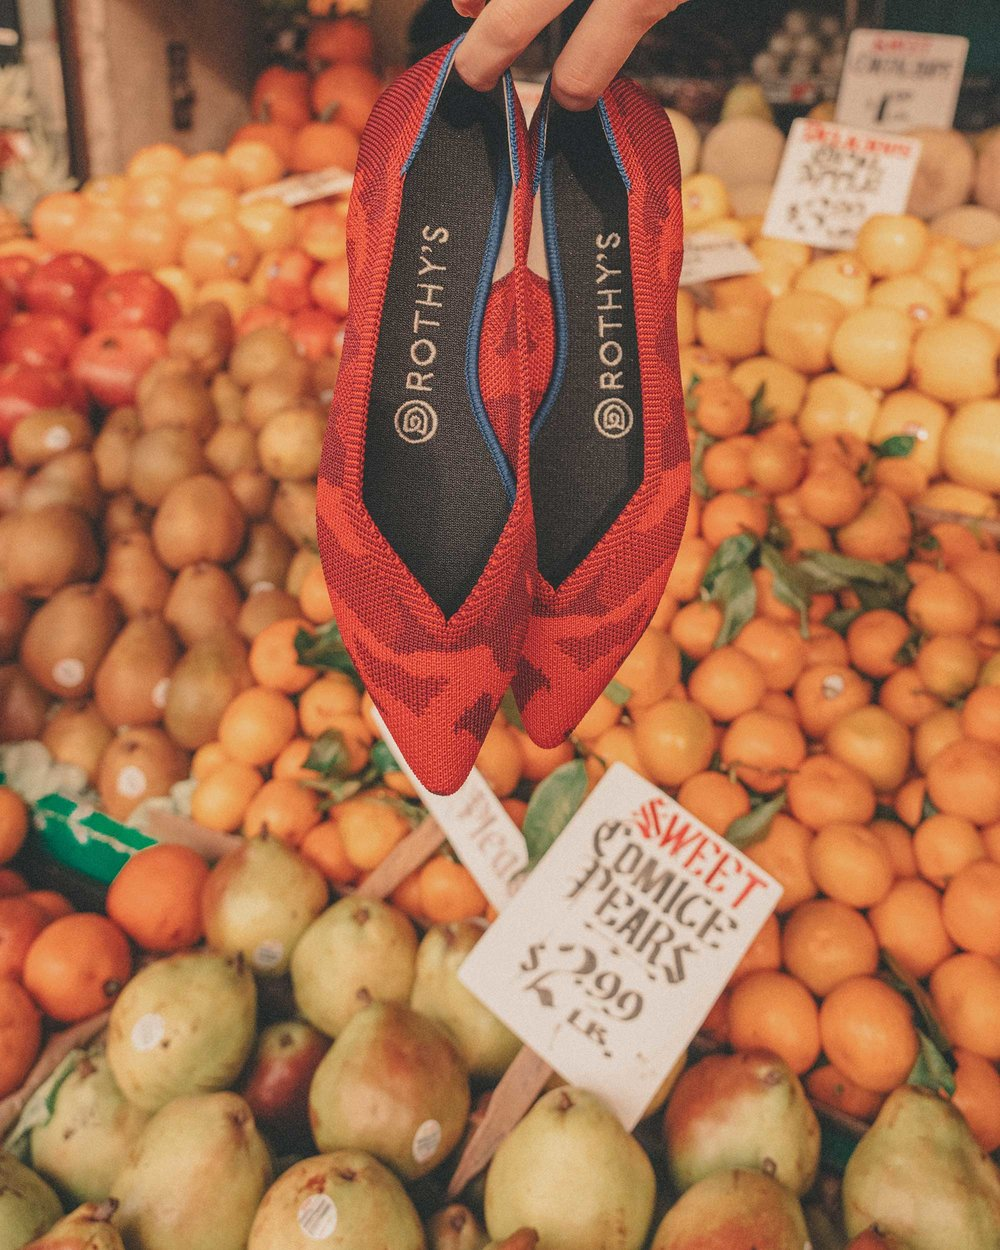 Pike-Place-Market-Seattle-Fruit-Stand-8.jpg